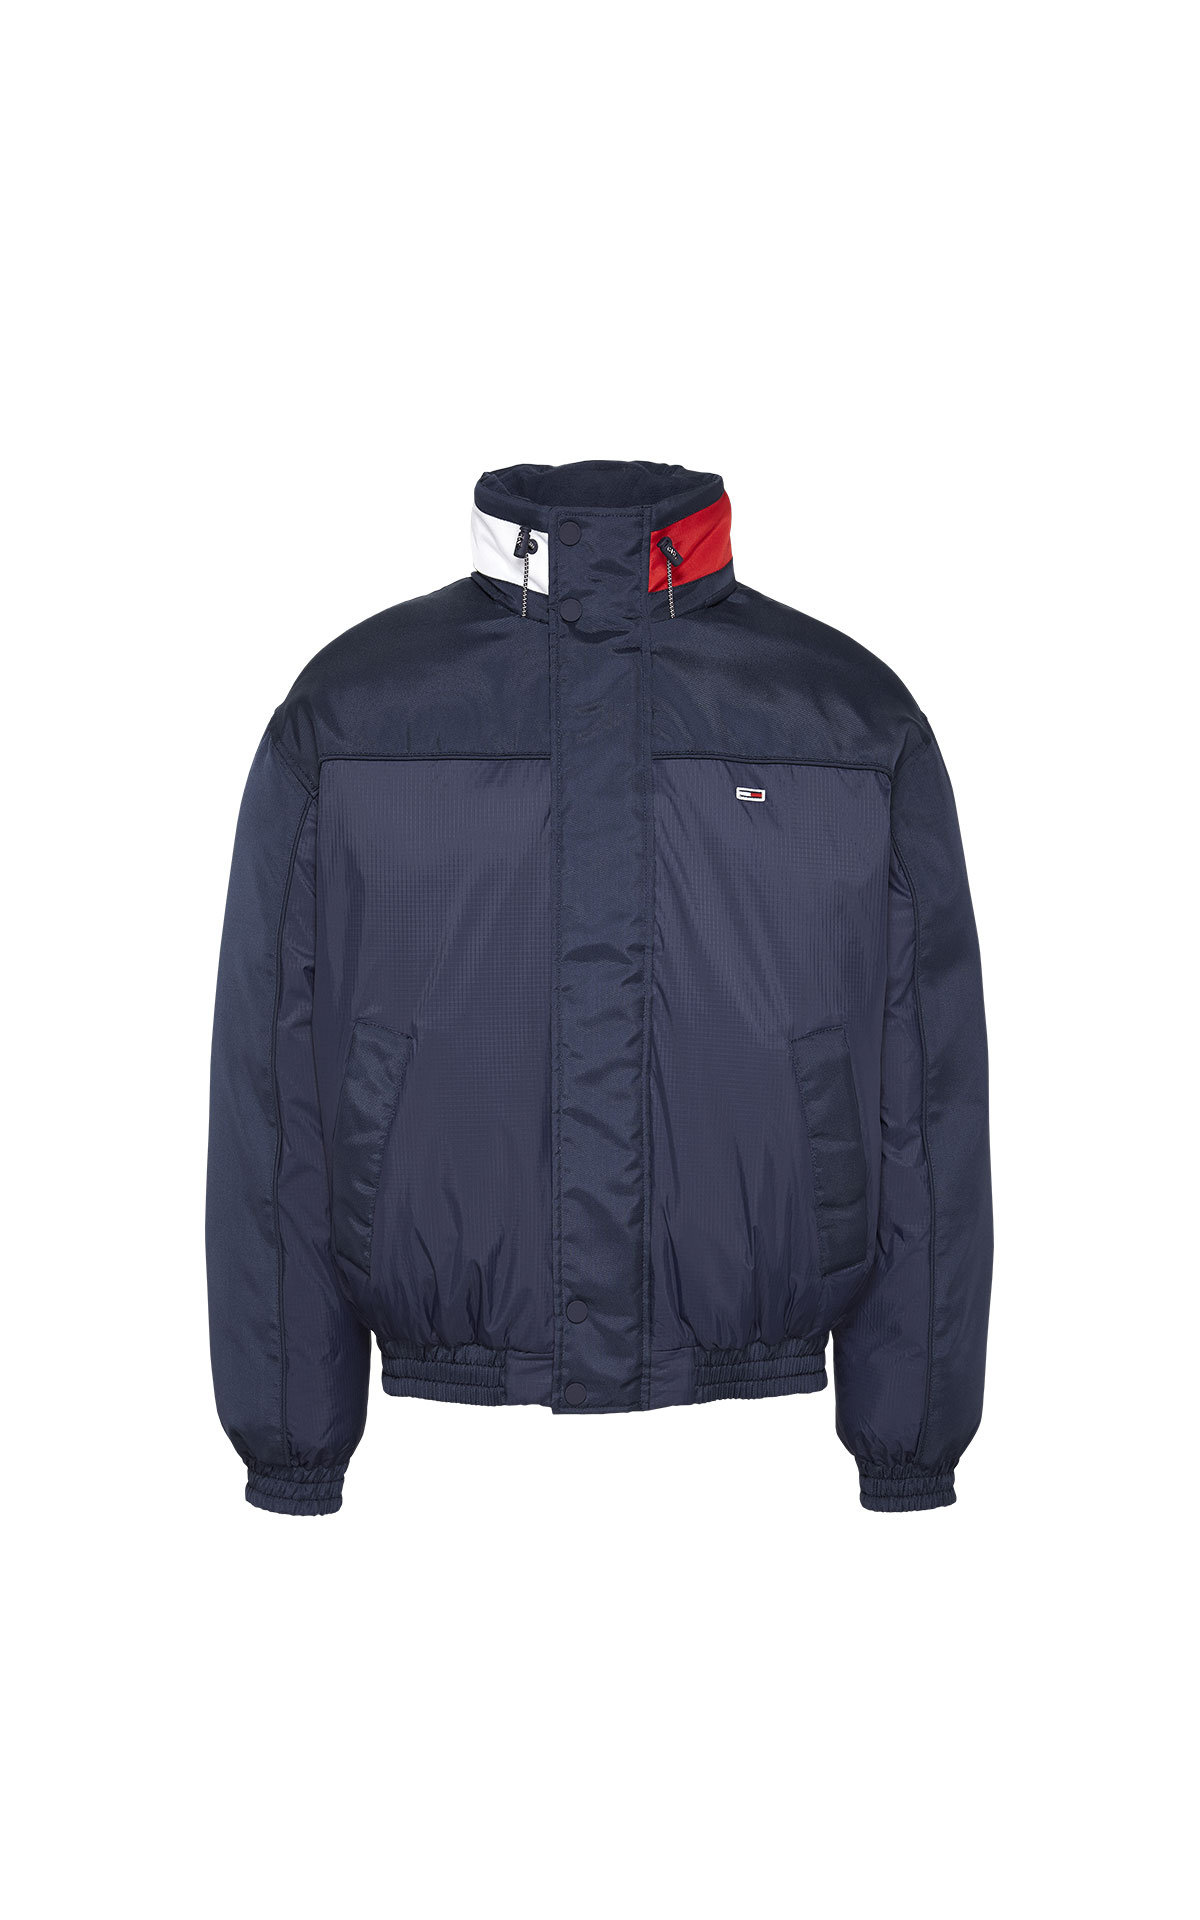 Tommy Hilfiger Men's Tommy Jeans Branded Collar Jacket at The Bicester Village Shopping Collection